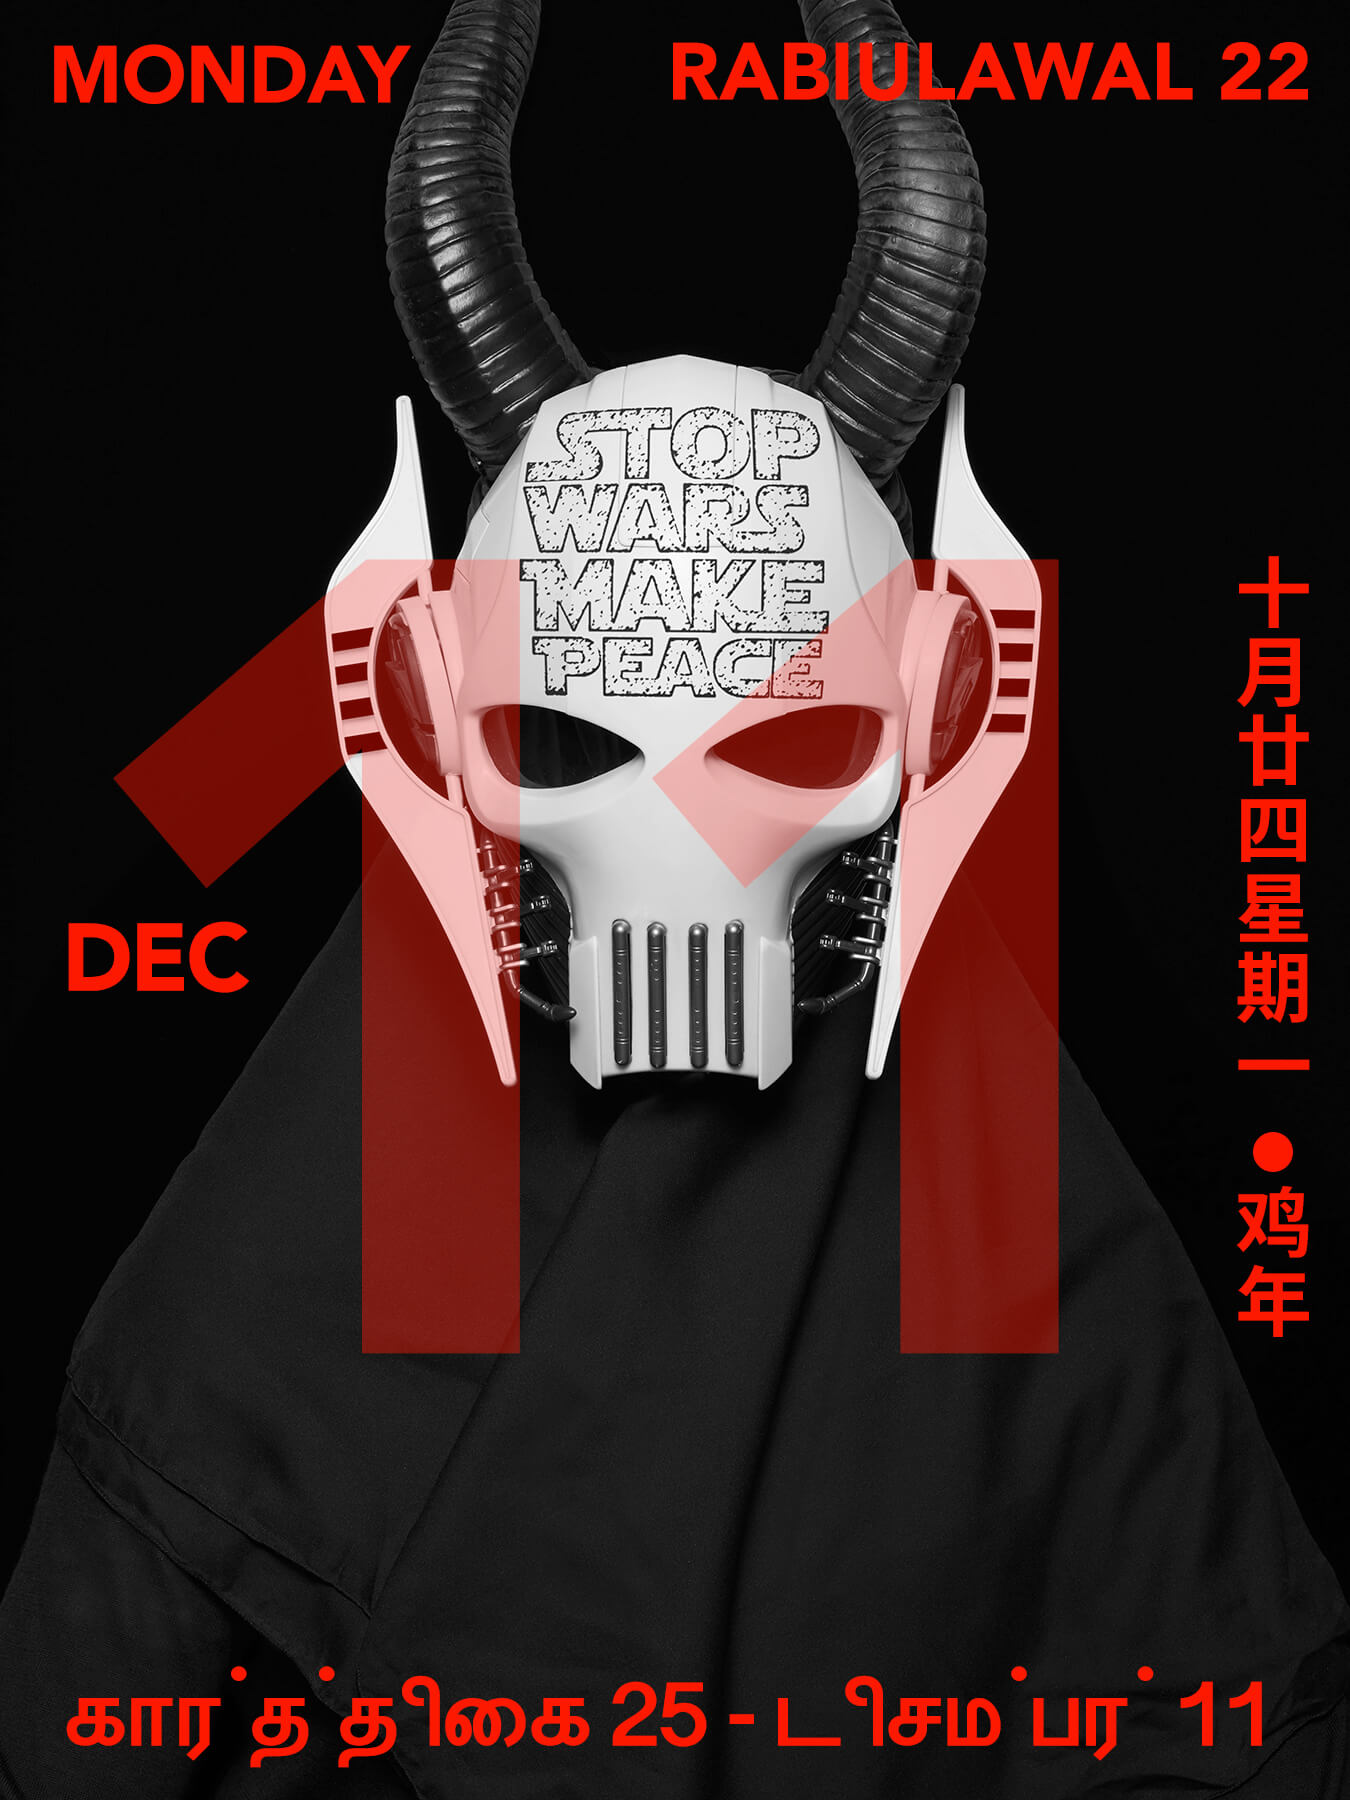 11 Dec 2017 Derong is photographed as Star Wars character 'General Grievous'